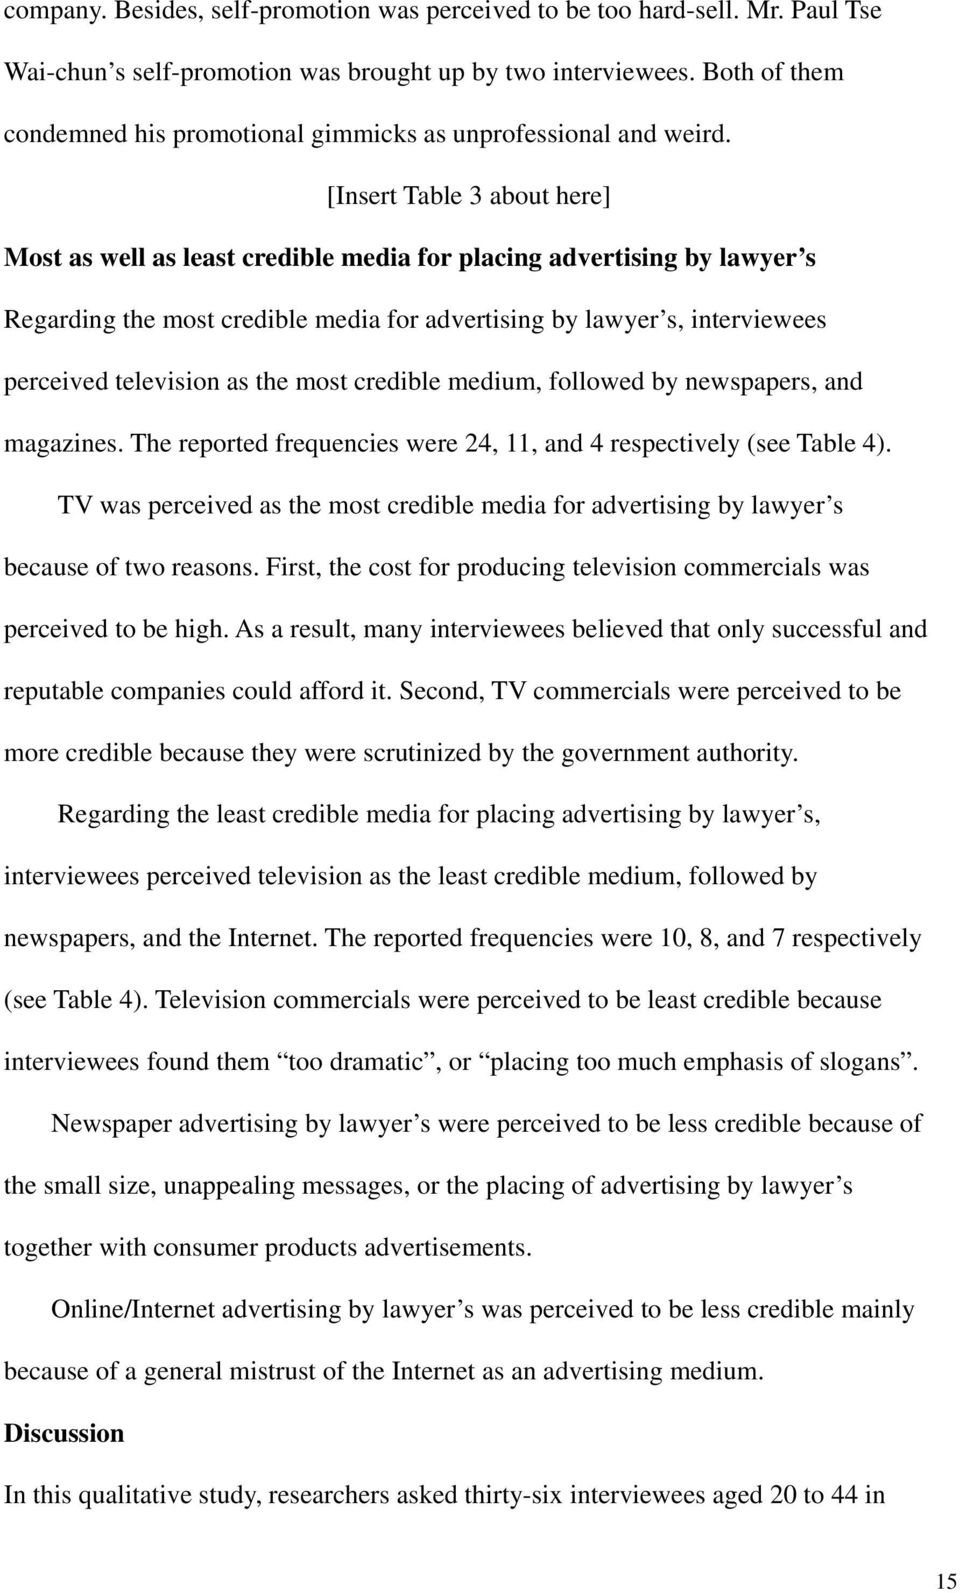 [Insert Table 3 about here] Most as well as least credible media for placing advertising by lawyer s Regarding the most credible media for advertising by lawyer s, interviewees perceived television